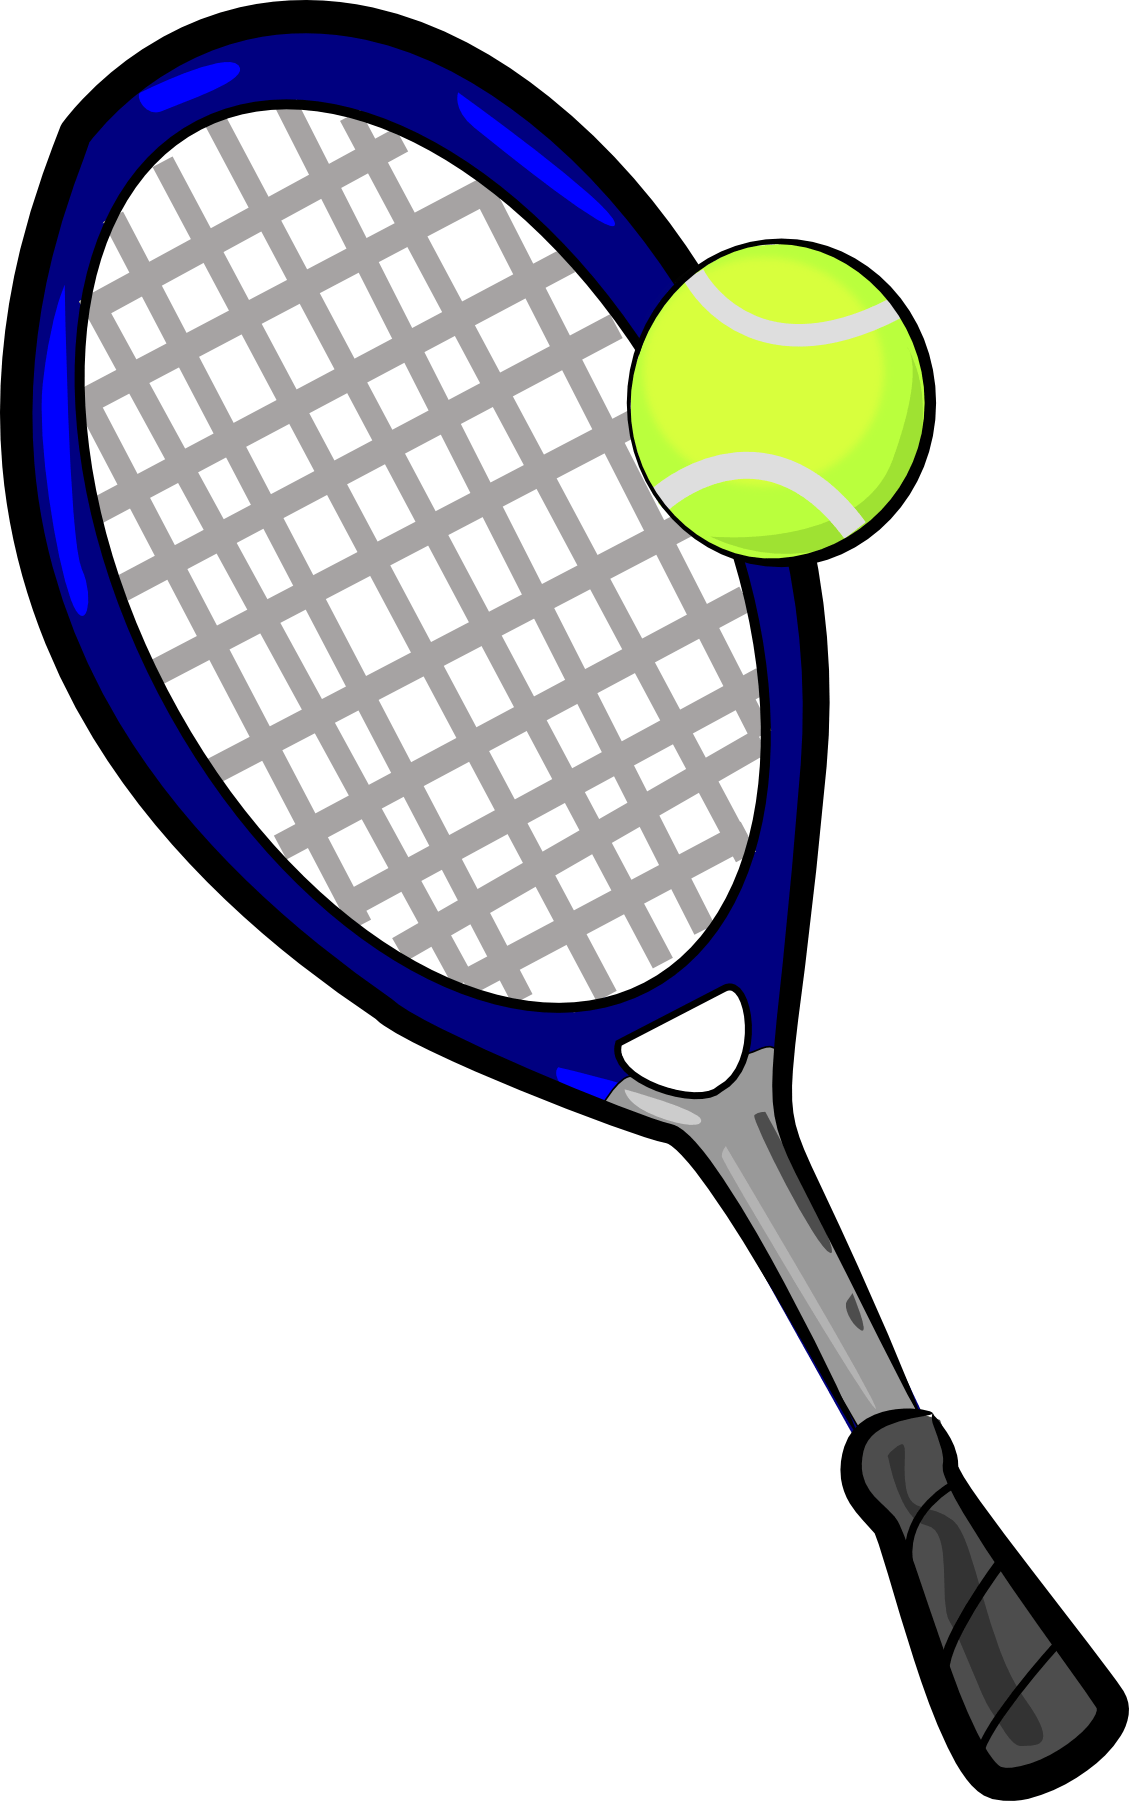 clipart freeuse stock Game scores the morgan. Tennis rackets clipart.